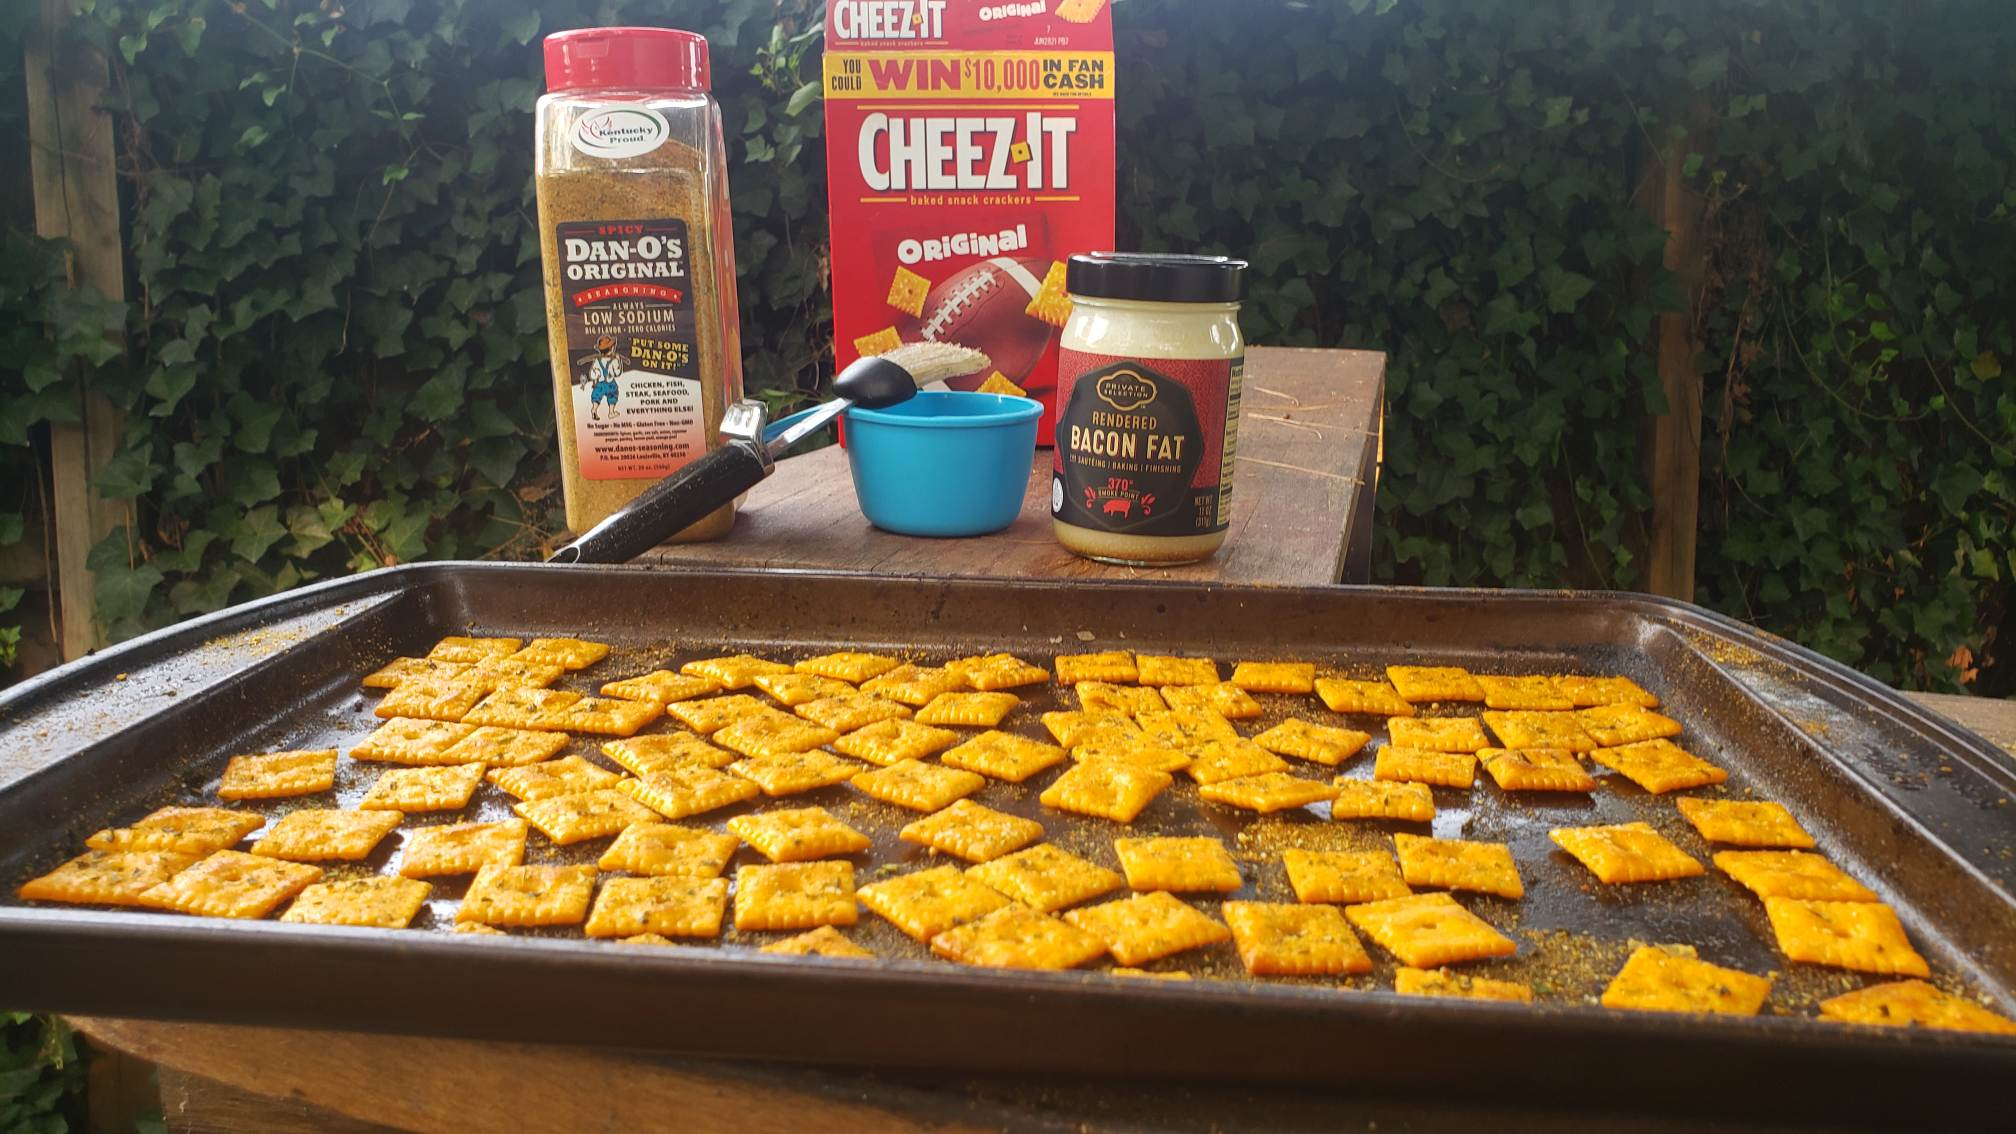 Cheez Its smoked with Dan-O's Seasoning and Bacon Fat - Image of ingredients